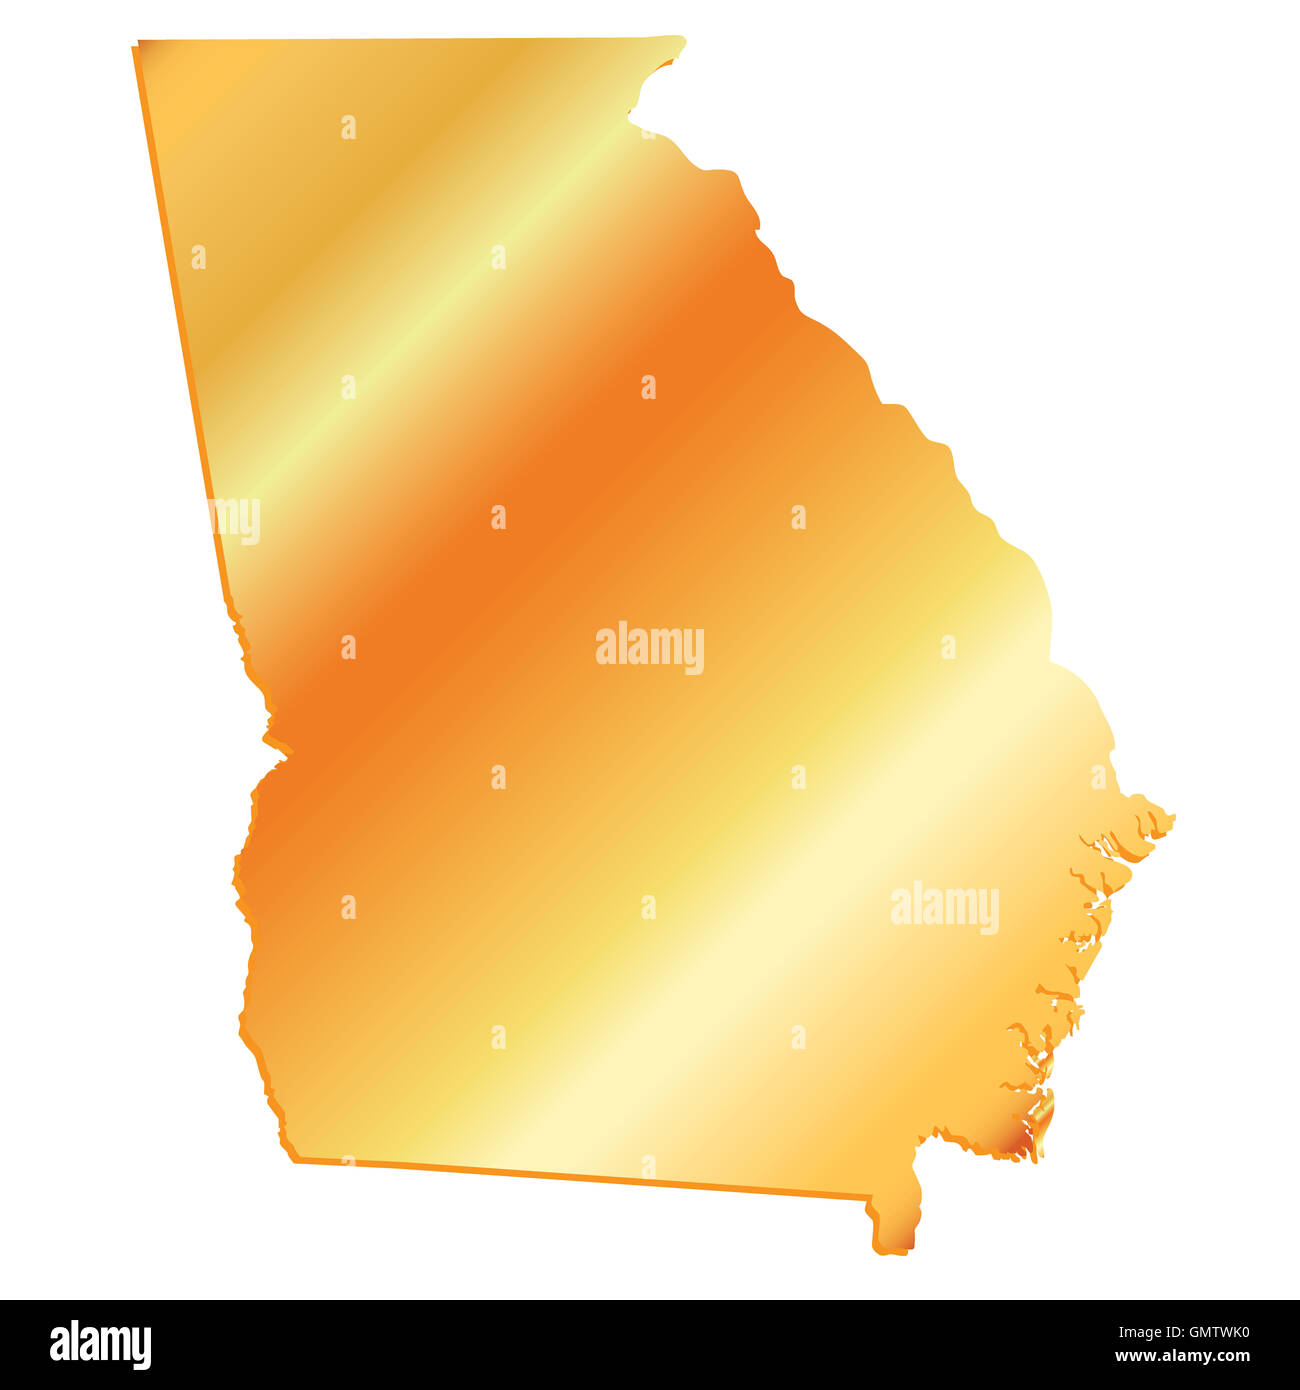 3d georgia usa gold outline map with shadow